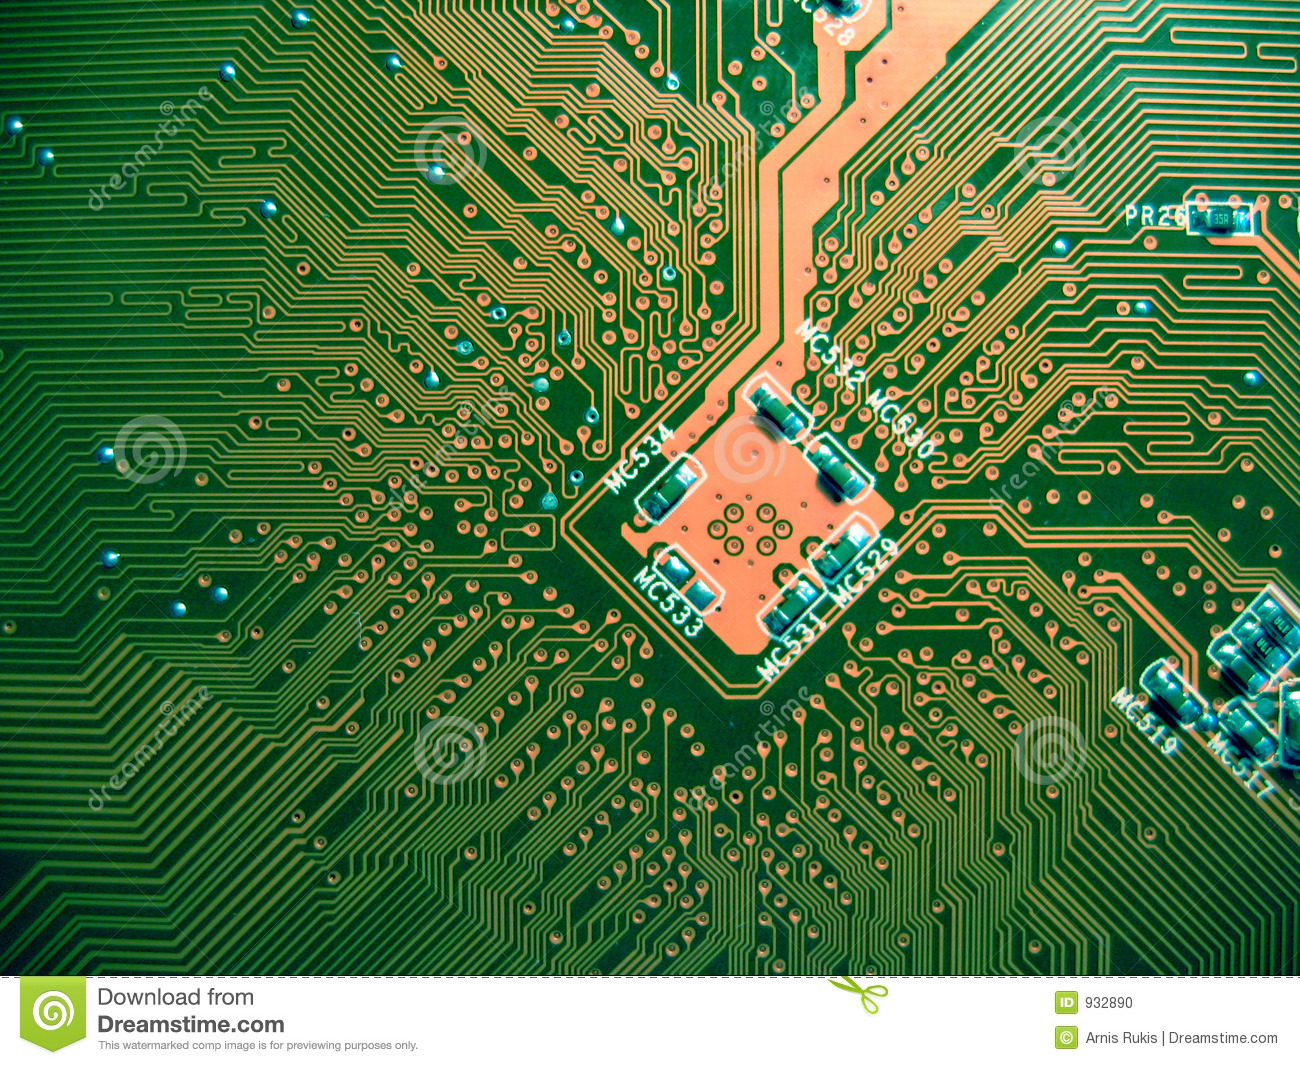 Fabrication Of Printed Circuit Boards For Extreme Environments Mom Manufacturing Process The Board Constant Innovation Is Roiling Electronics Industry Fierce Global Competition Puts Steady Pressure On Profit Margins Even As Competitive Edge In